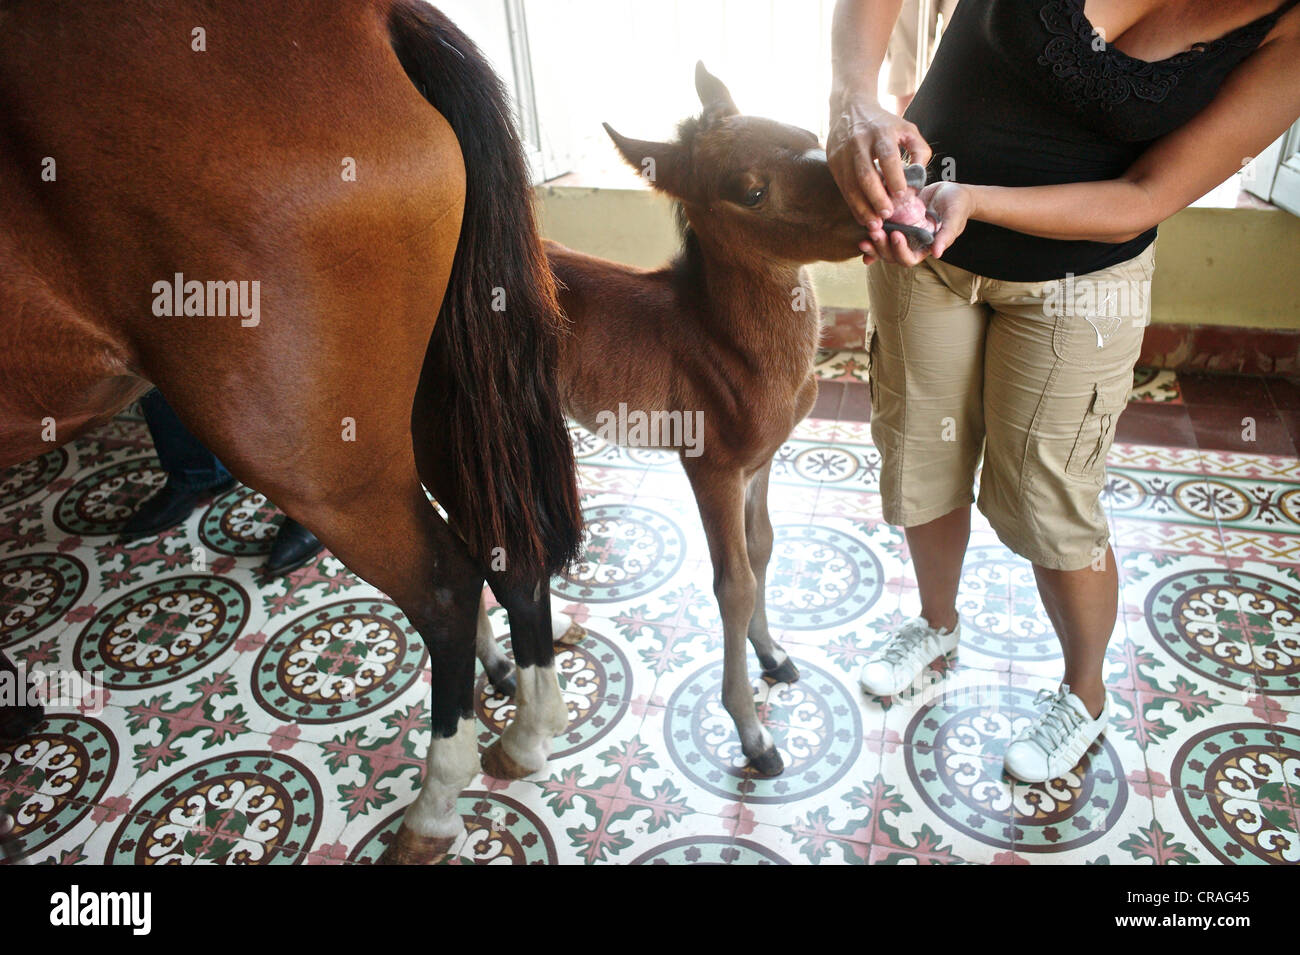 Newborn Baby Horse At The Living Room Of Horse Whisperer Julio Munoz Stock Photo Alamy